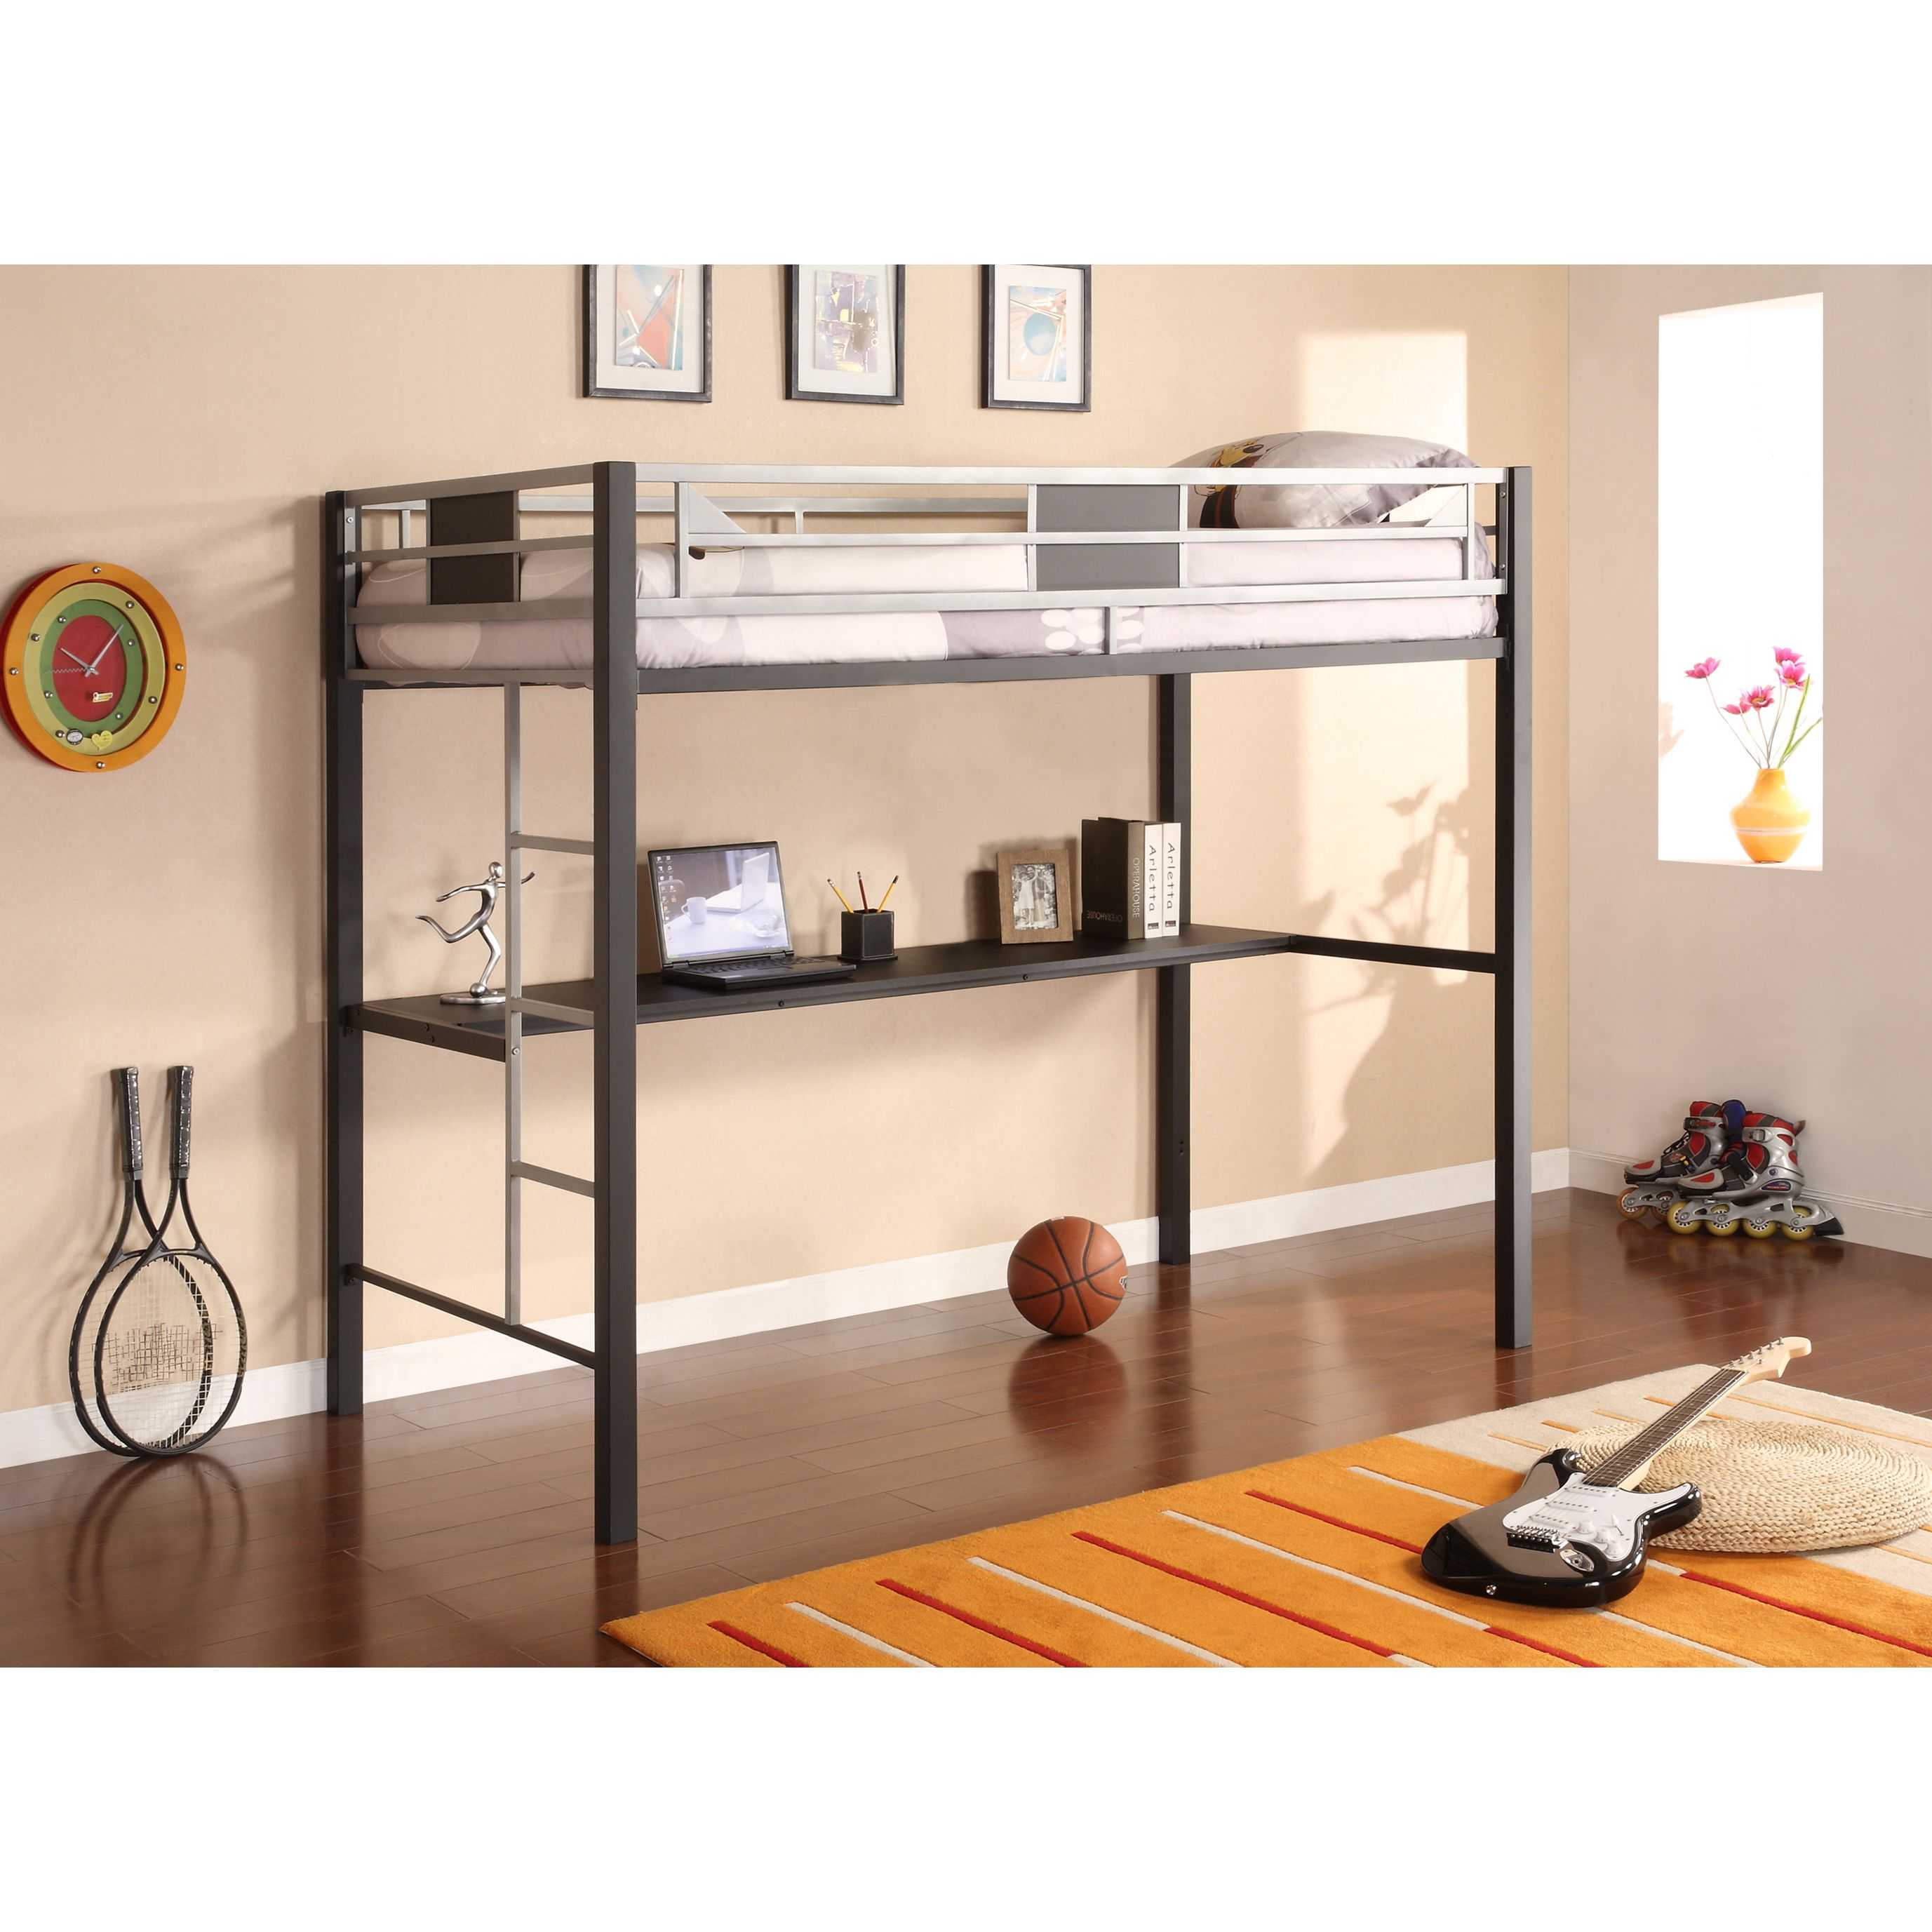 Loft bed with desk full size mattress  The Silver Screen Loft Bed brings a cool chic look with practical